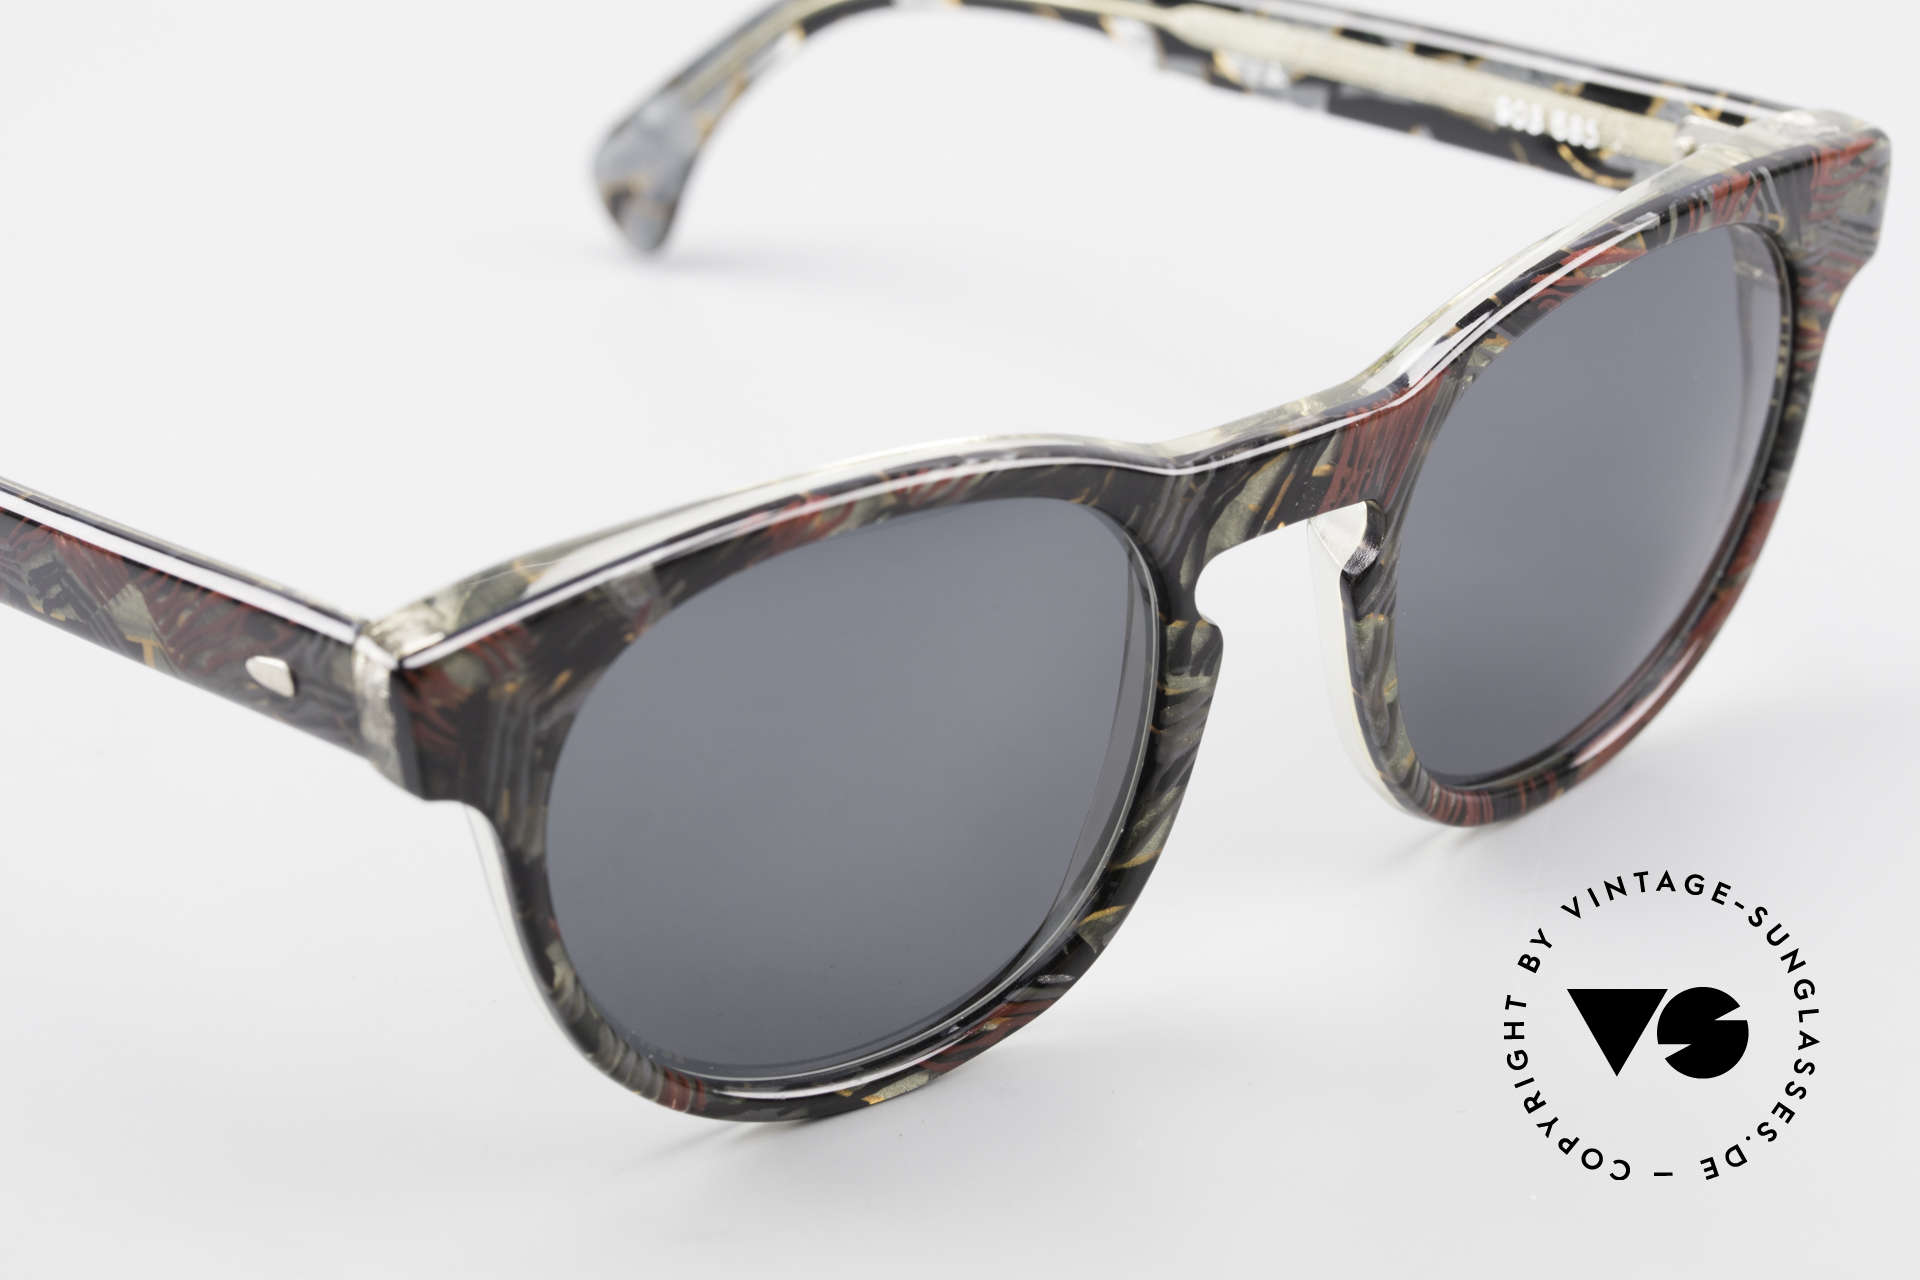 Alain Mikli 903 / 685 Panto Frame Gray Patterned, never worn (like all our vintage Alain Mikli specs), Made for Men and Women